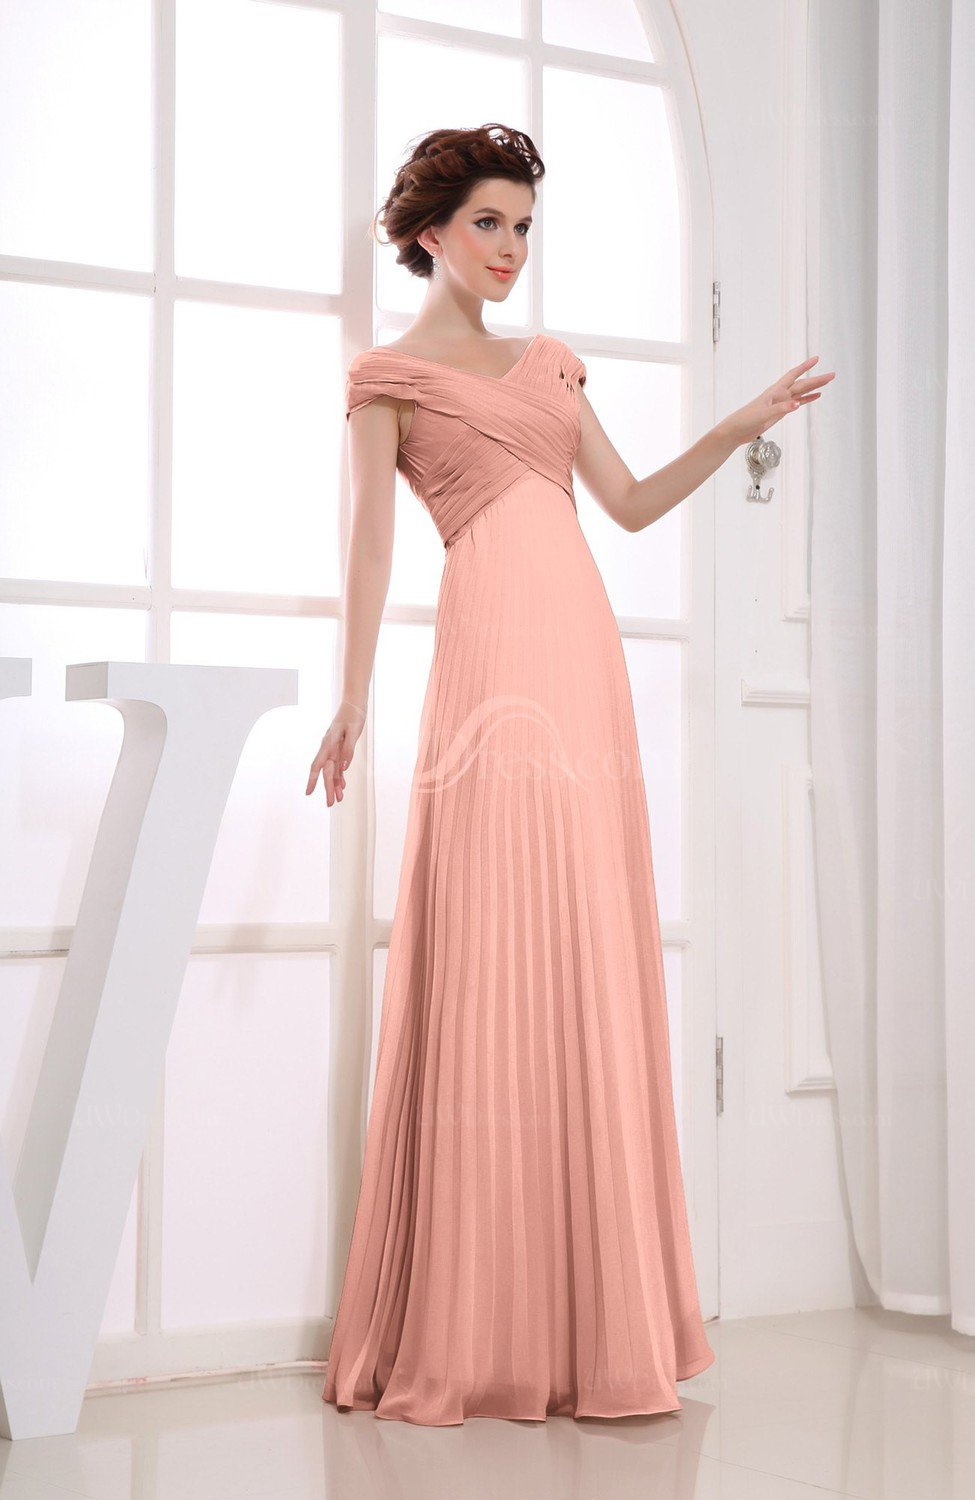 Plus size bridesmaid dresses uwdress peach vintage empire short sleeve zipper chiffon floor length bridesmaid dresses ombrellifo Image collections